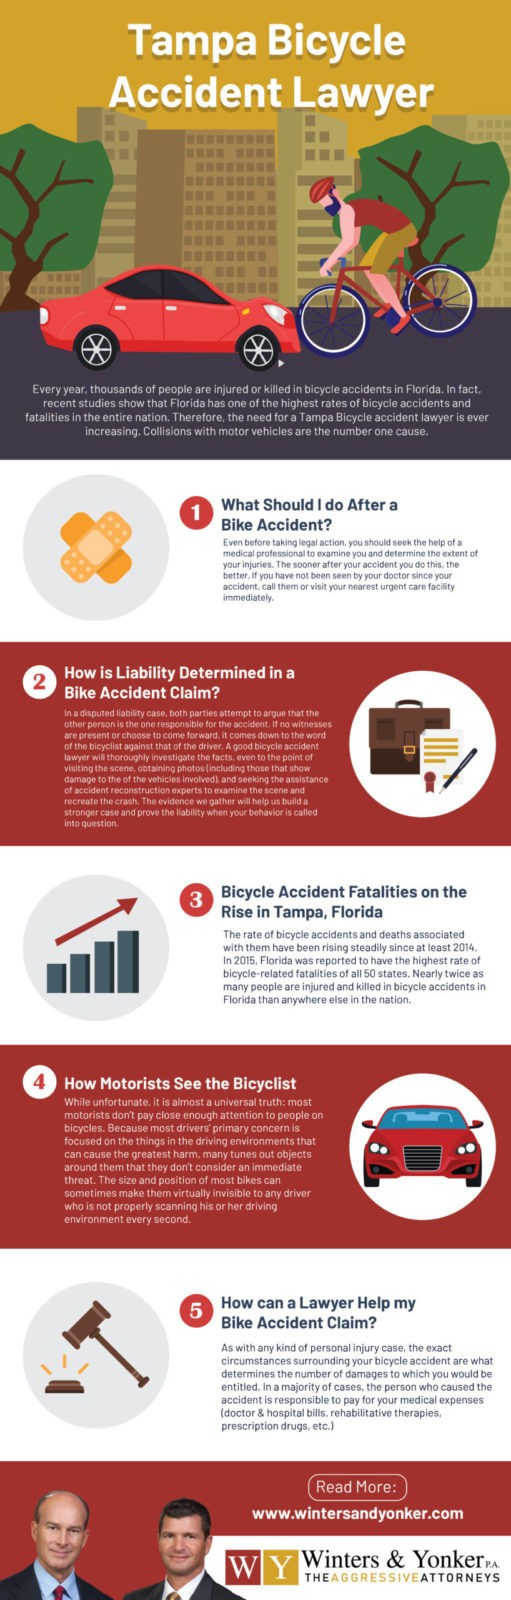 Tampa Bicycle Accident Lawyer 1